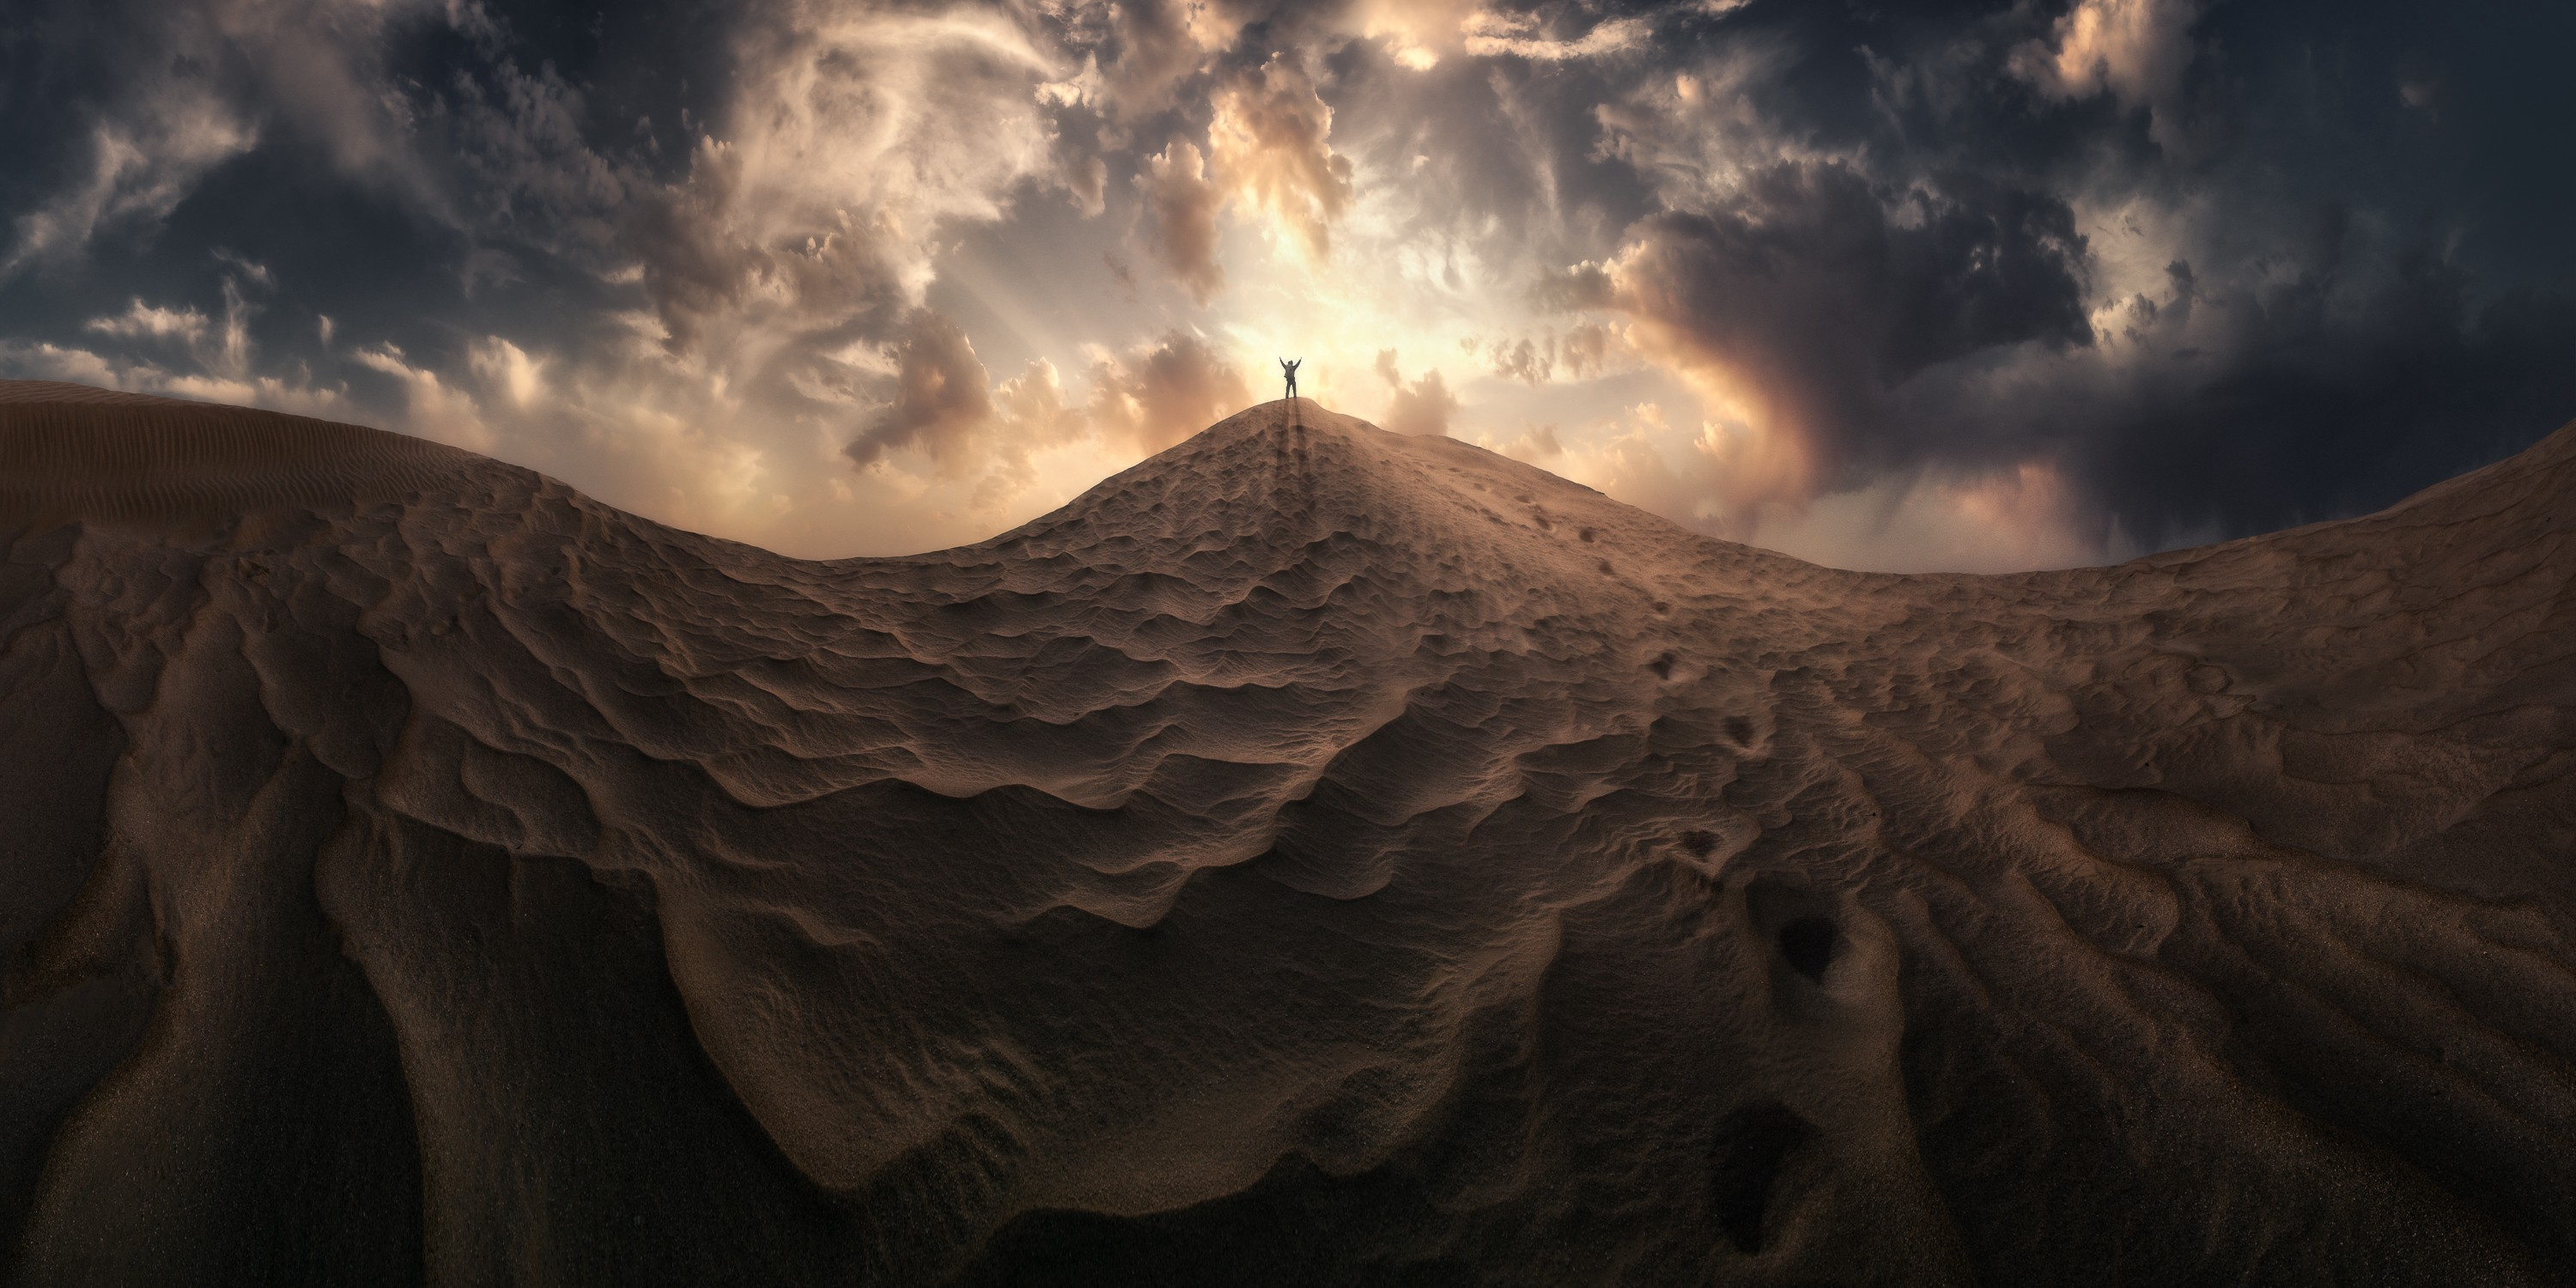 A man stands on top of peak of sand with arms outstretched, backed by a bright sun